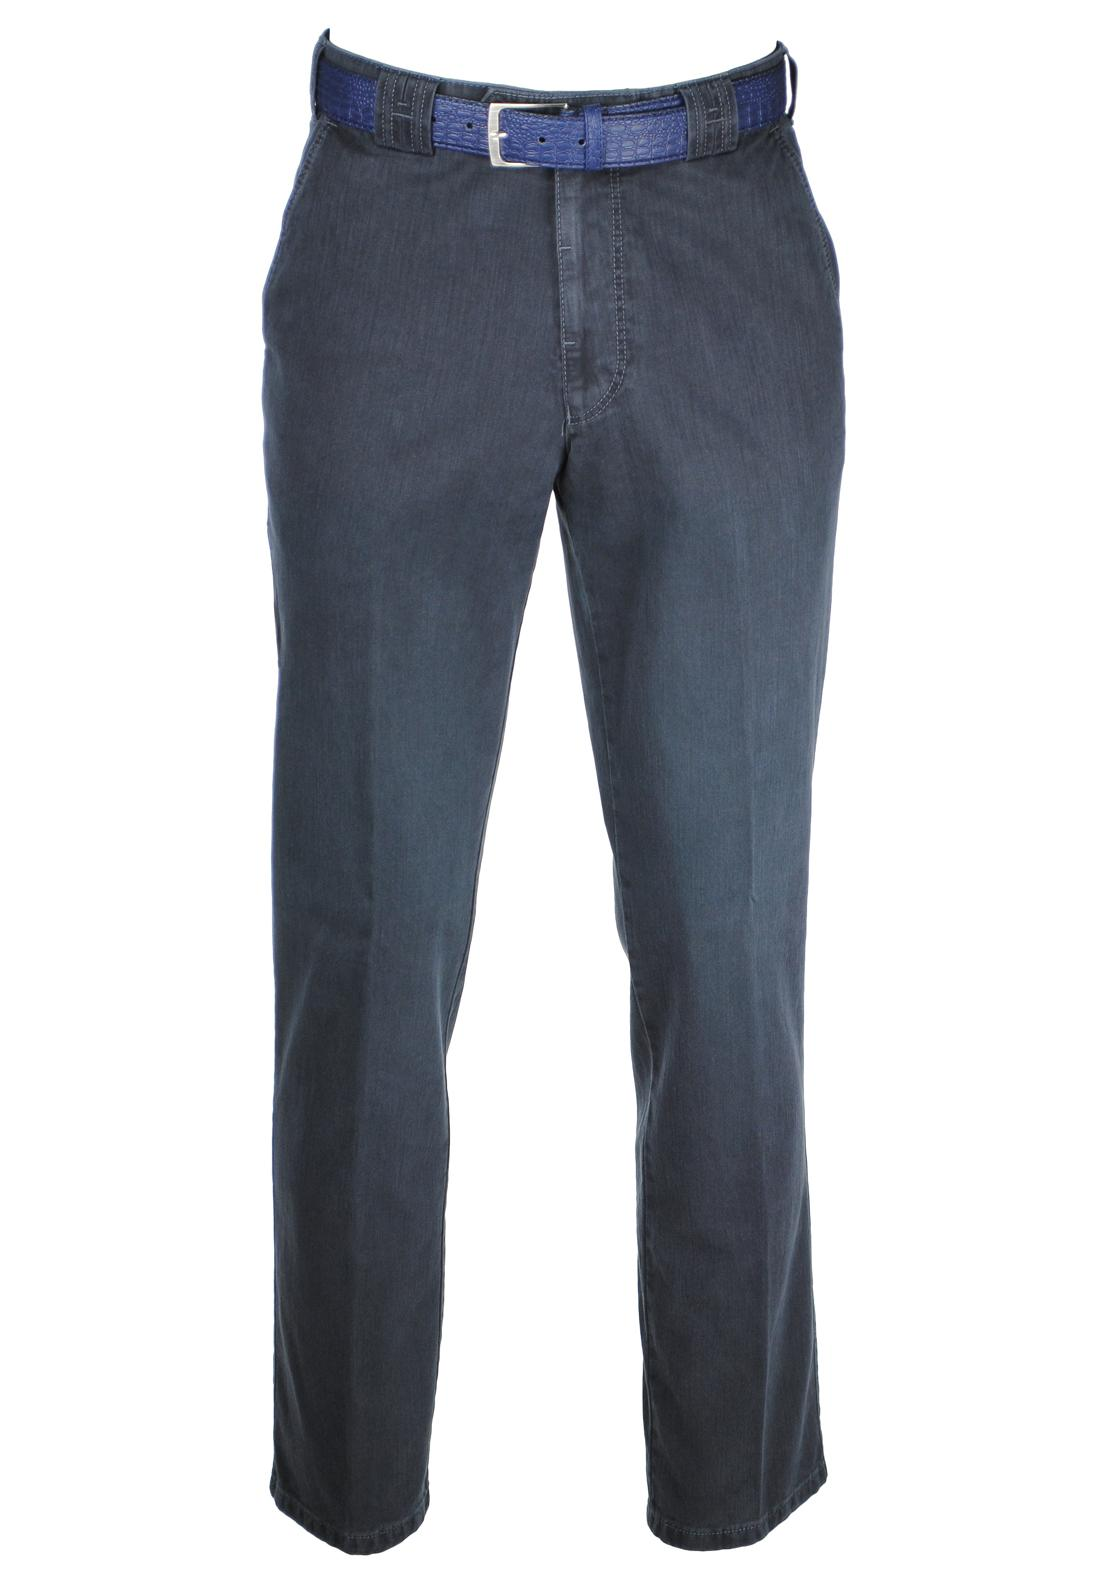 Meyer Jeans, Charcoal